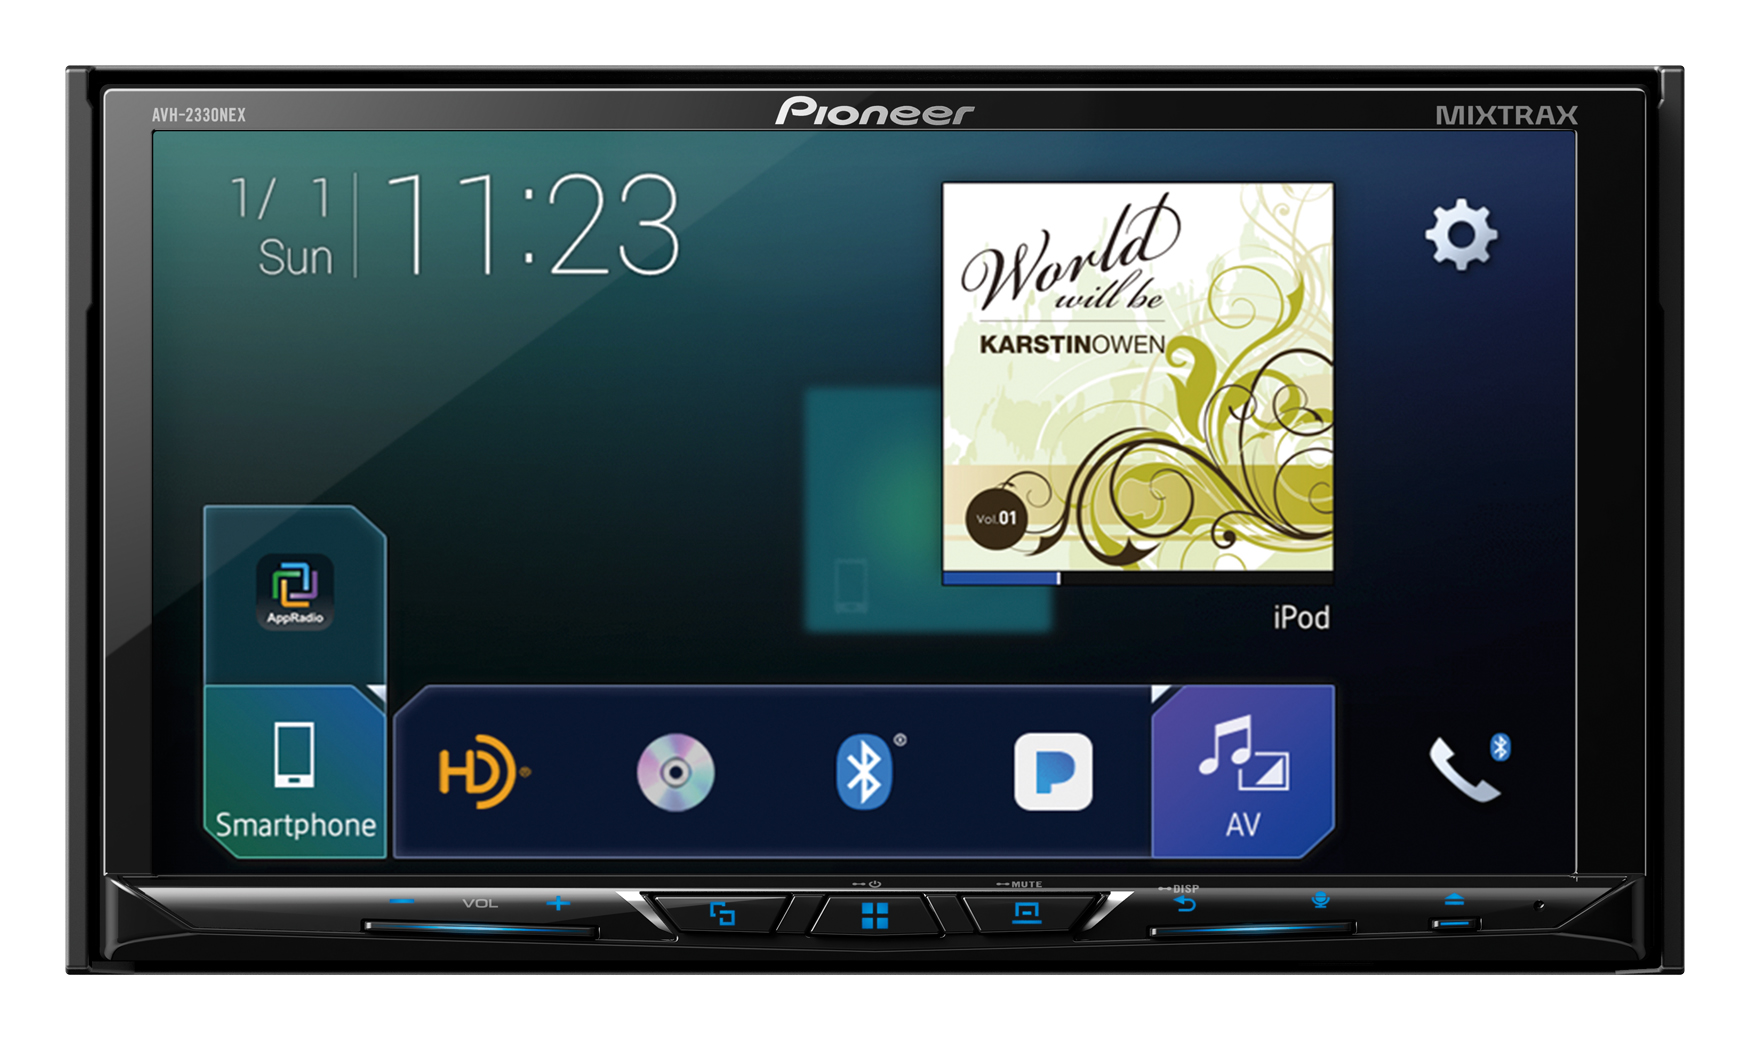 Pioneer AVH 2330NEX_350dpi5in smartphones and driving made easier with pioneer nex receivers  at readyjetset.co